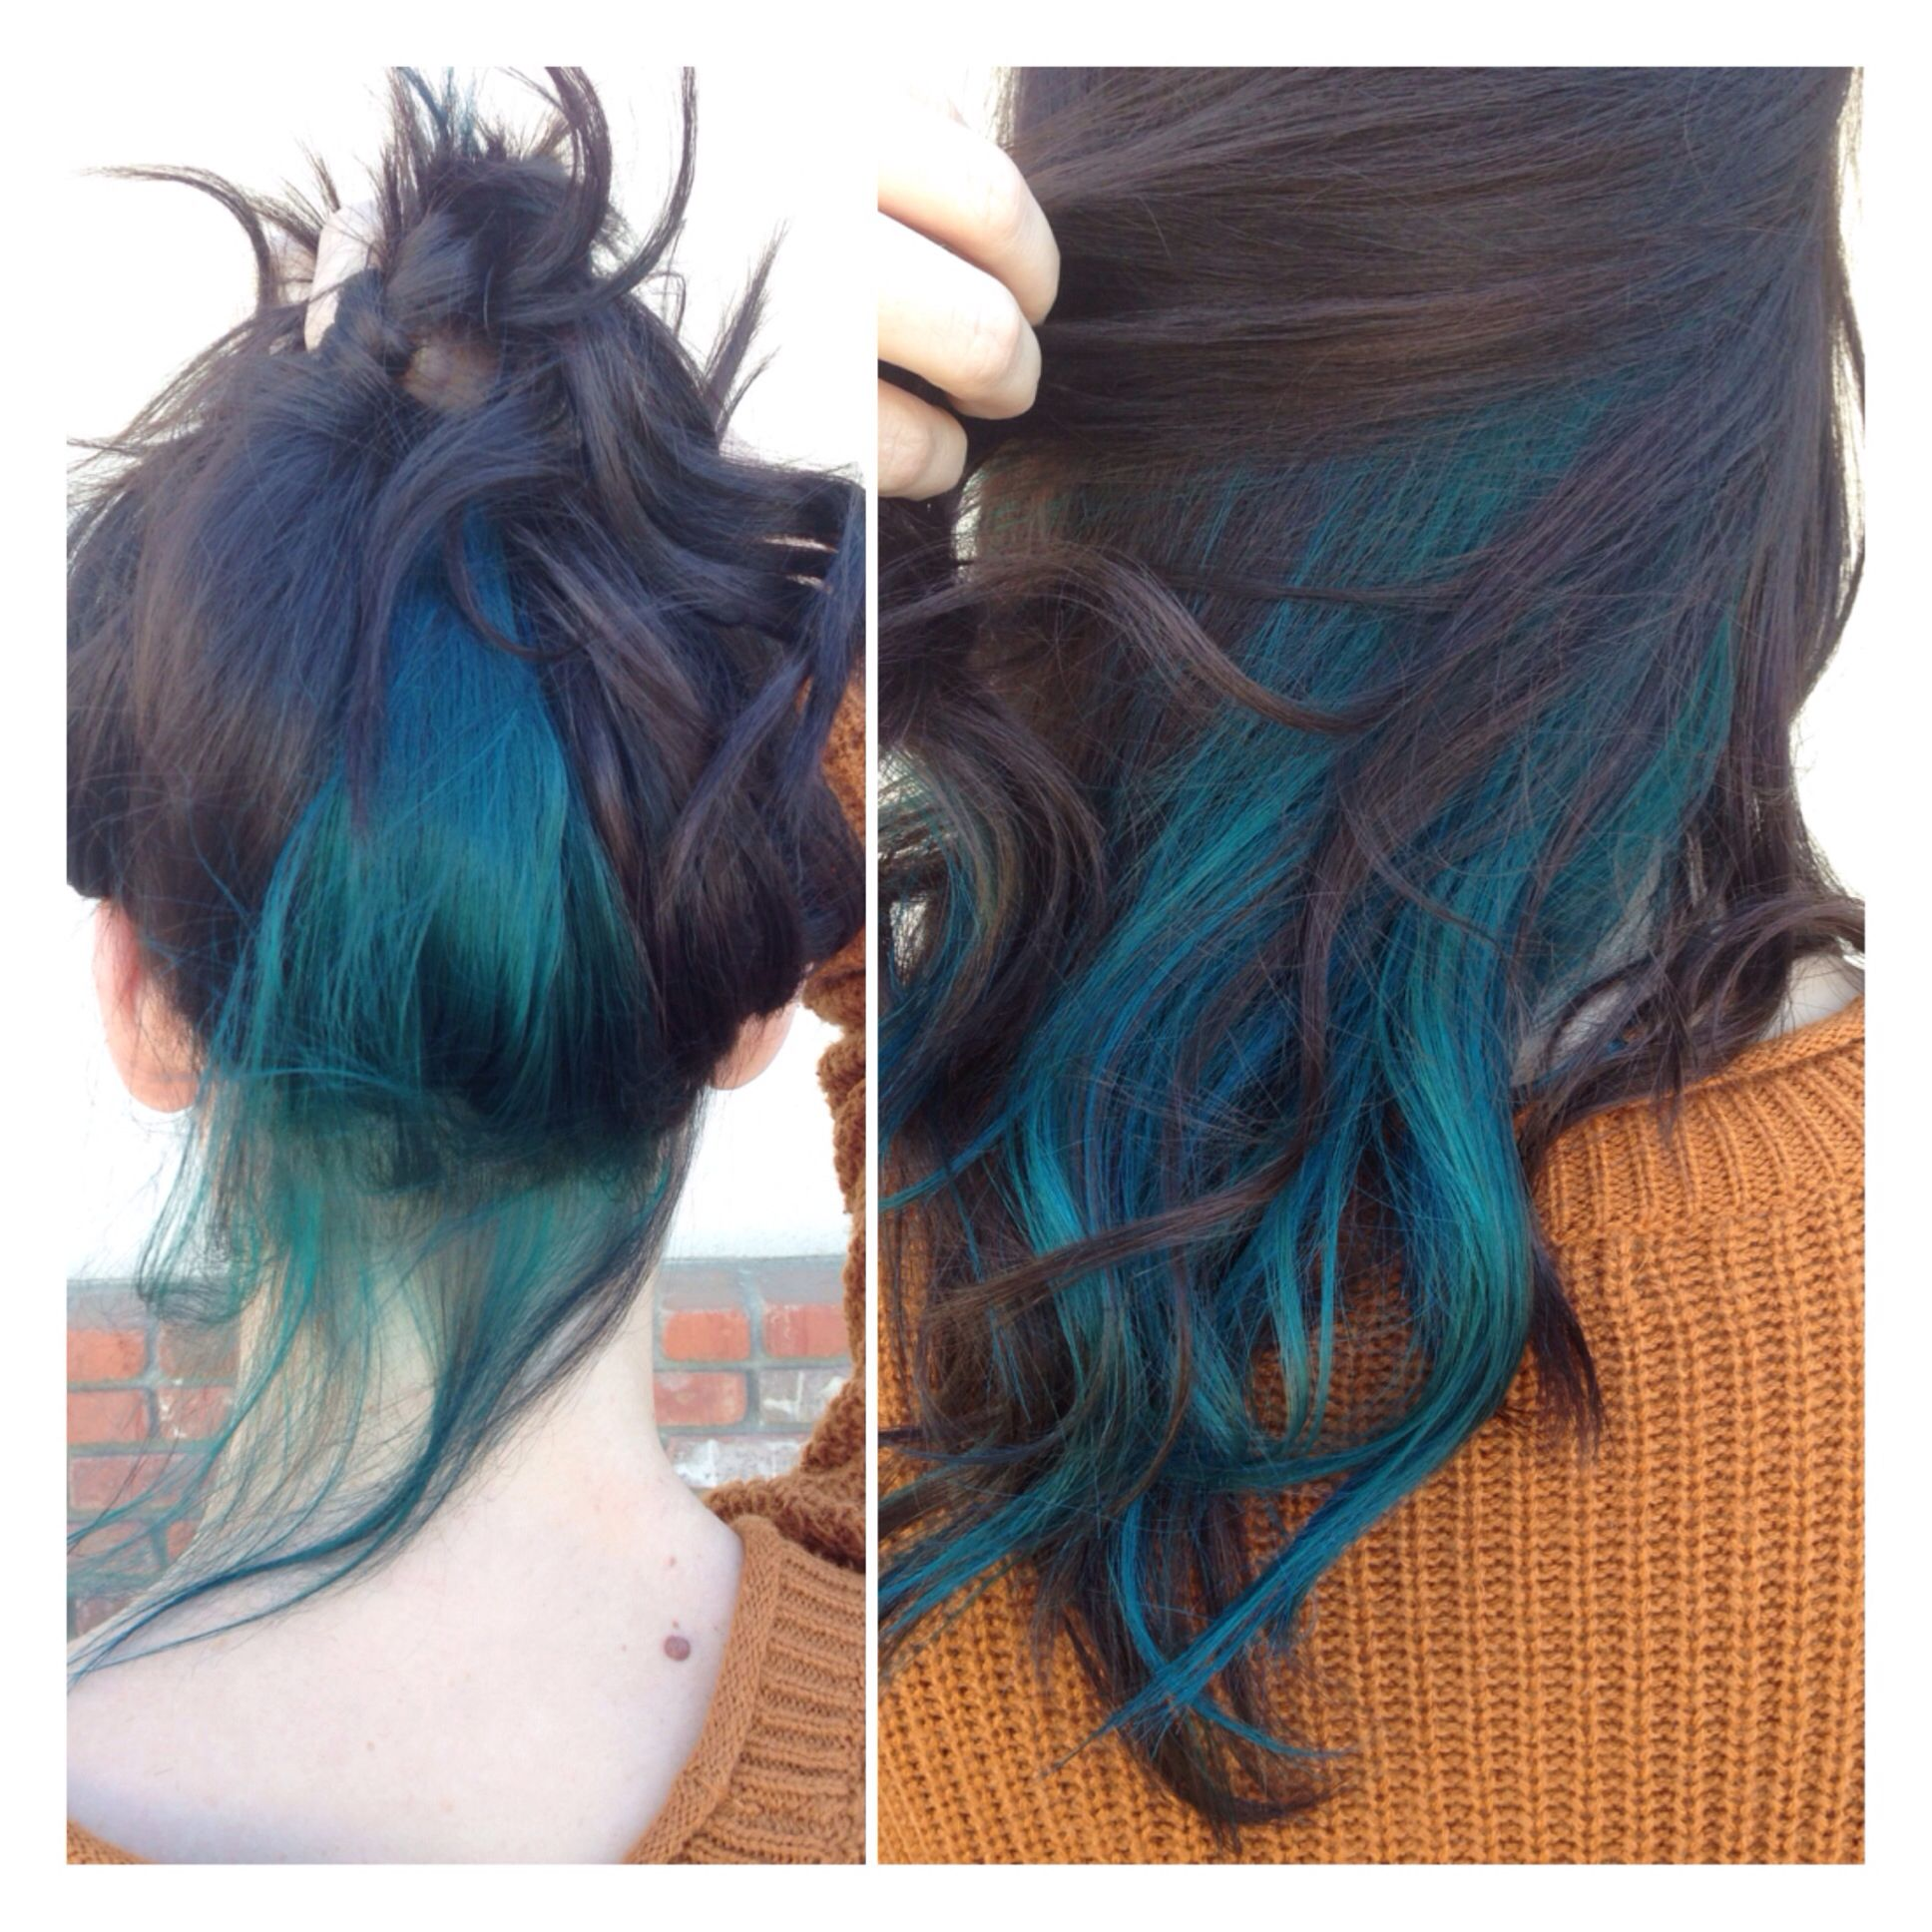 Vibrant teal achieved by mixing joicous cobalt blue u peacock green